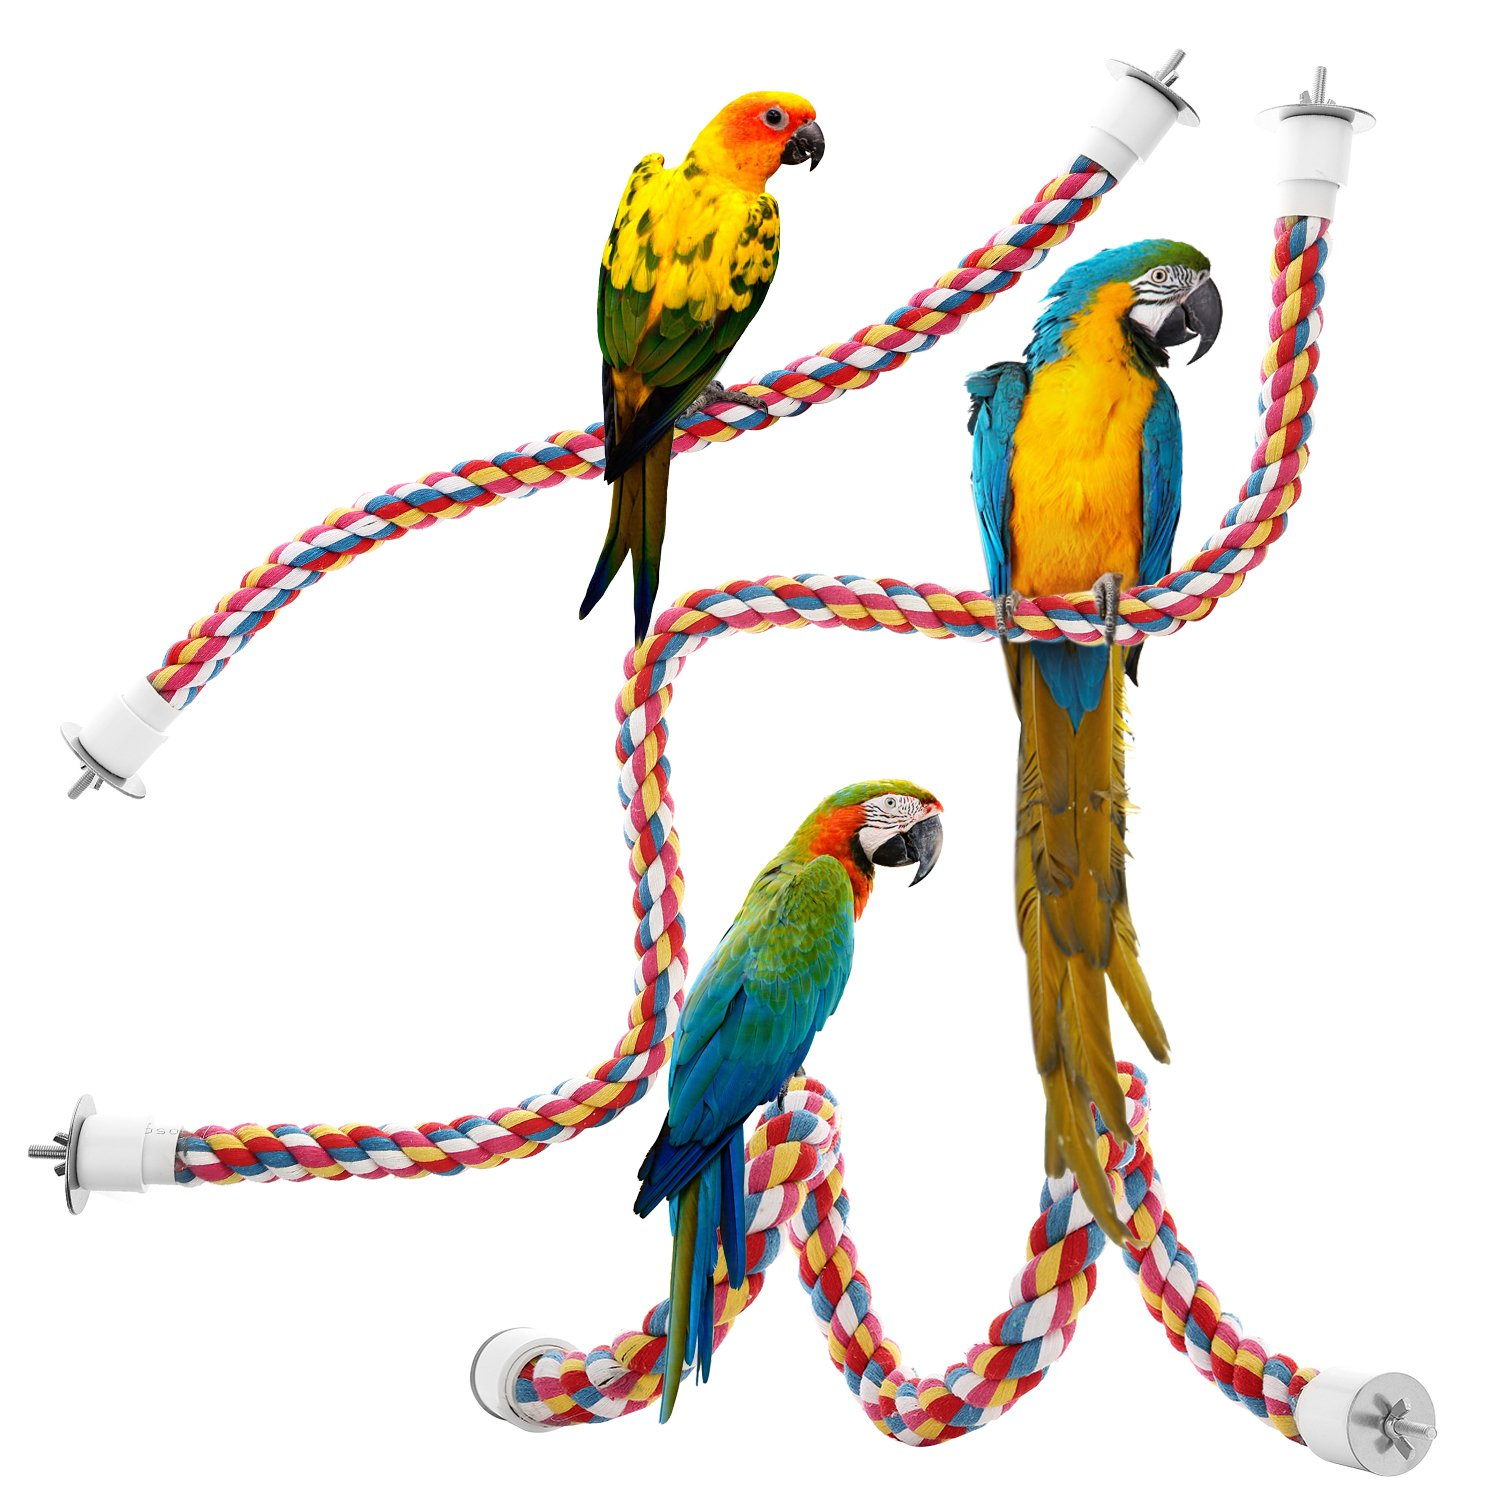 Jusney Bird Rope Perches,Parrot Toys 41 inches Rope Bungee Bird Toy (41 inches)